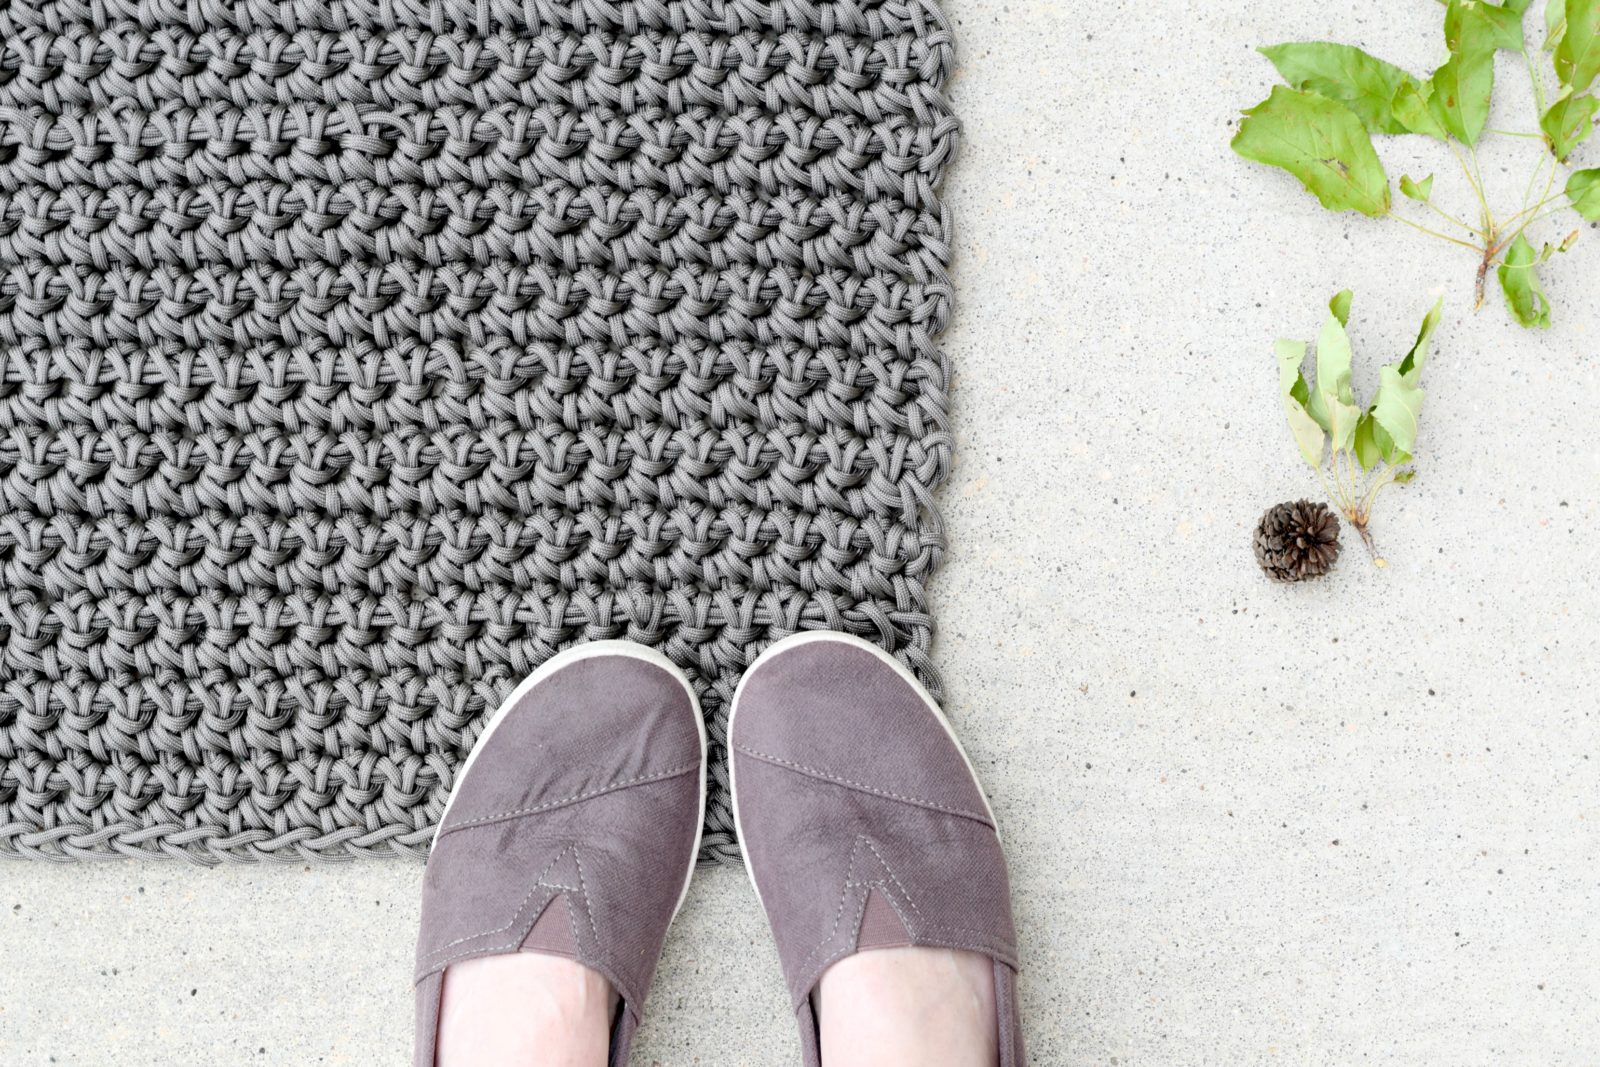 How To Crochet An Outdoor Rug (For Beginners)